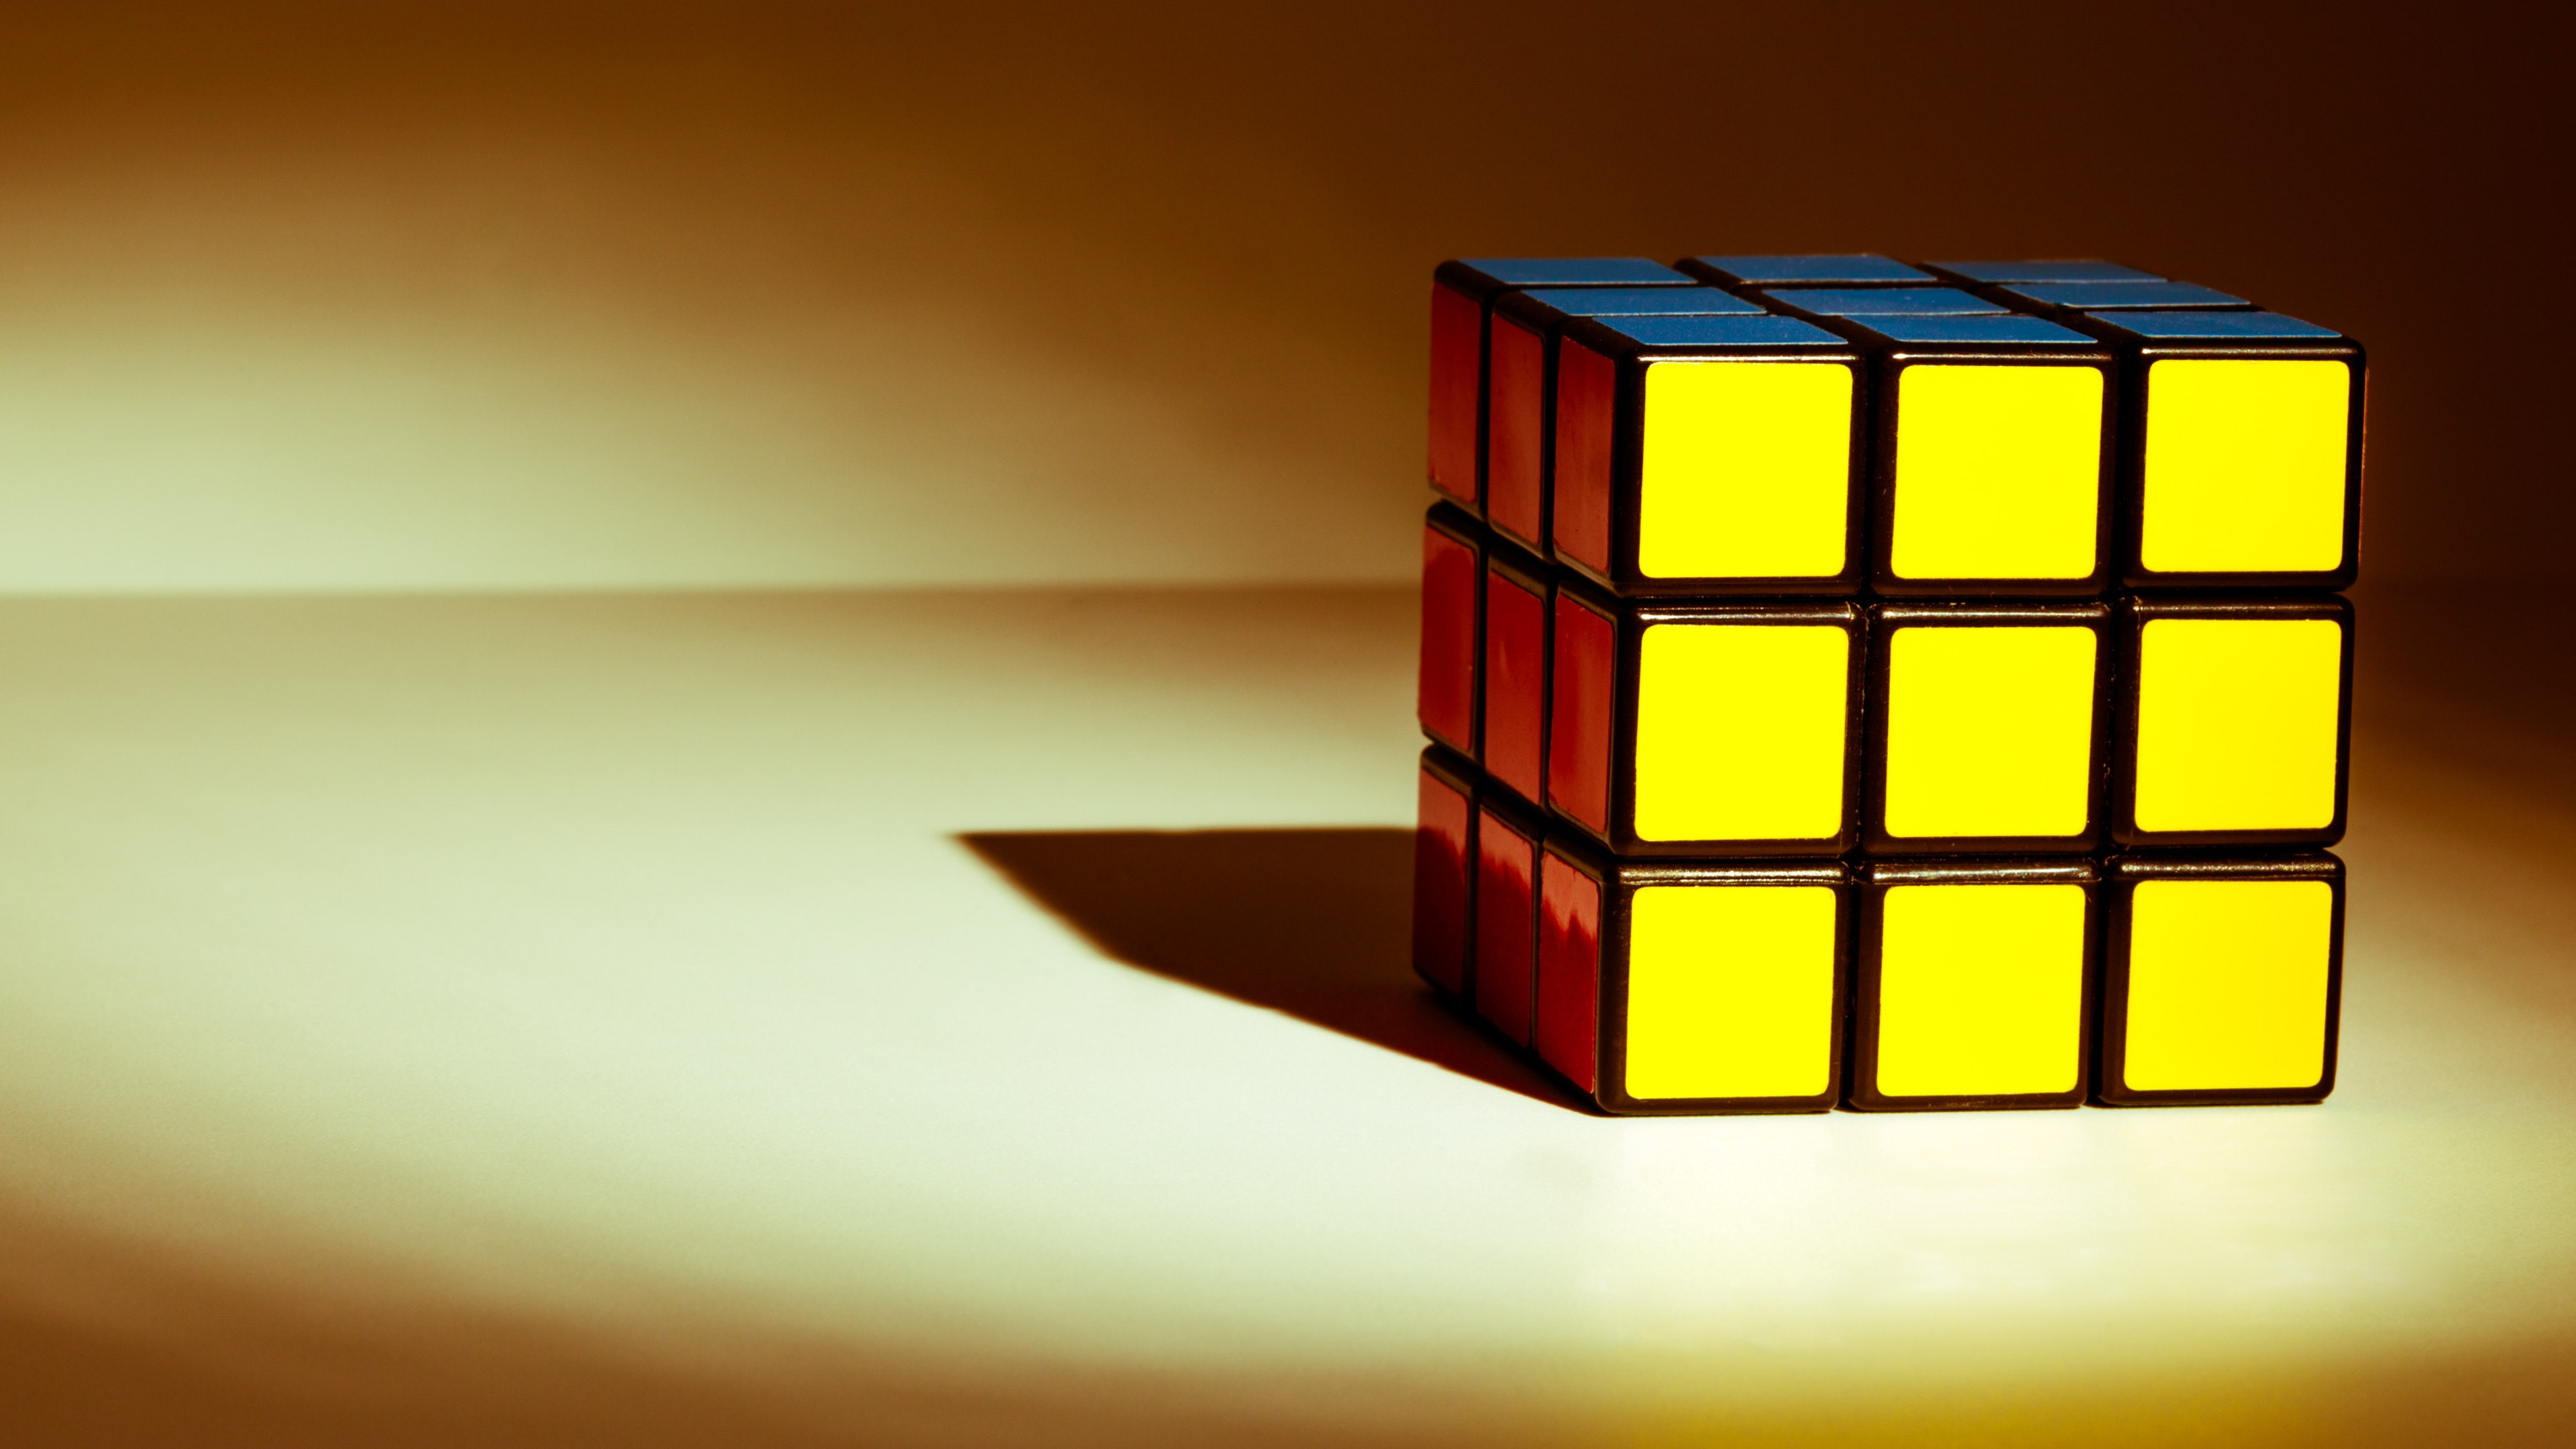 Robot Solves Rubik's Cube Puzzle in 0.38 Seconds